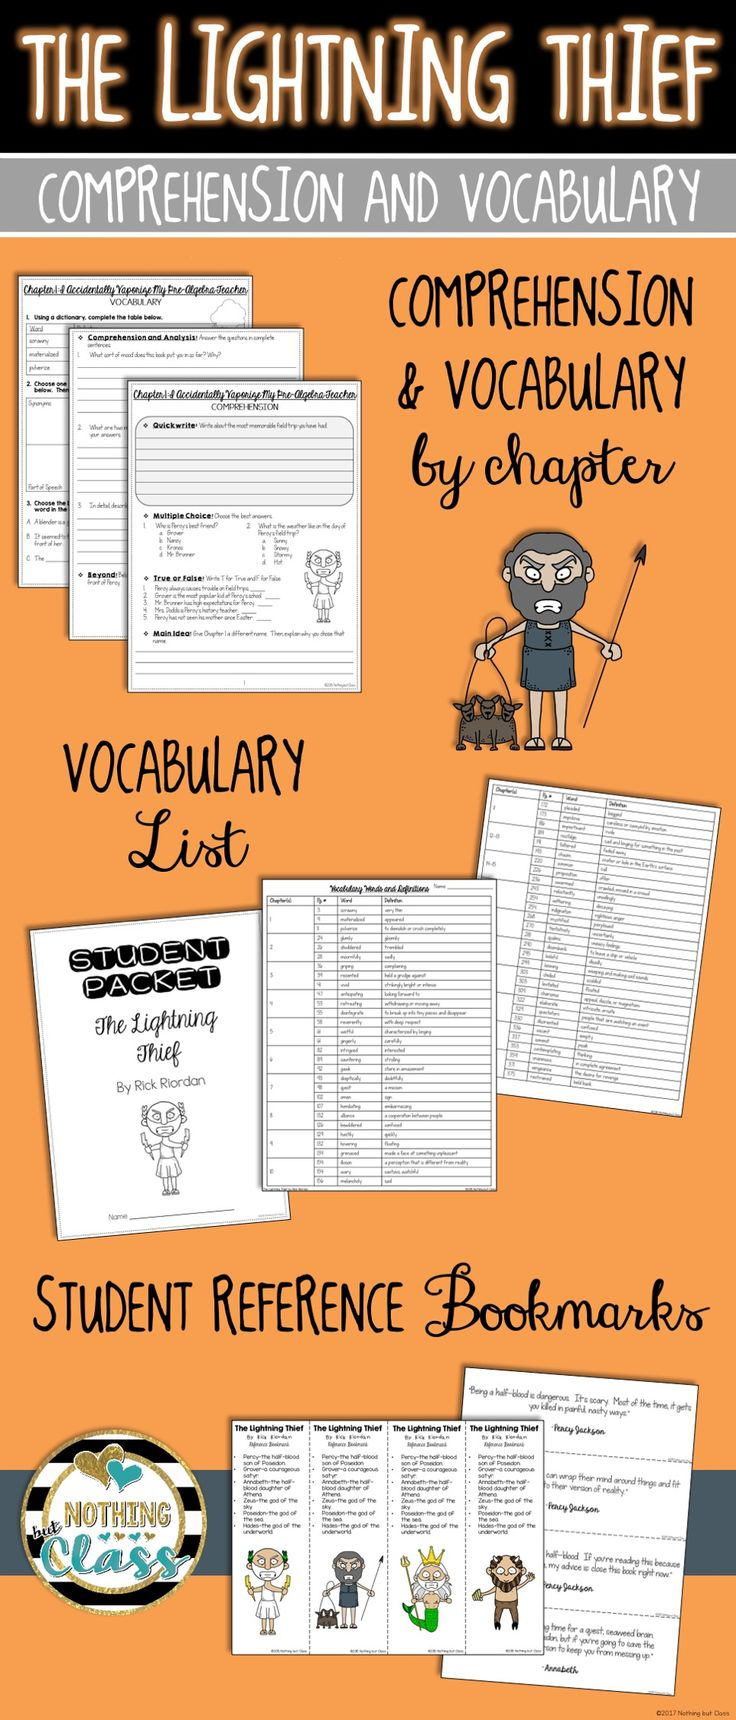 Workbooks percy jackson and the lightning thief worksheets : 50 best the lightning thief images on Pinterest | Book stuff ...